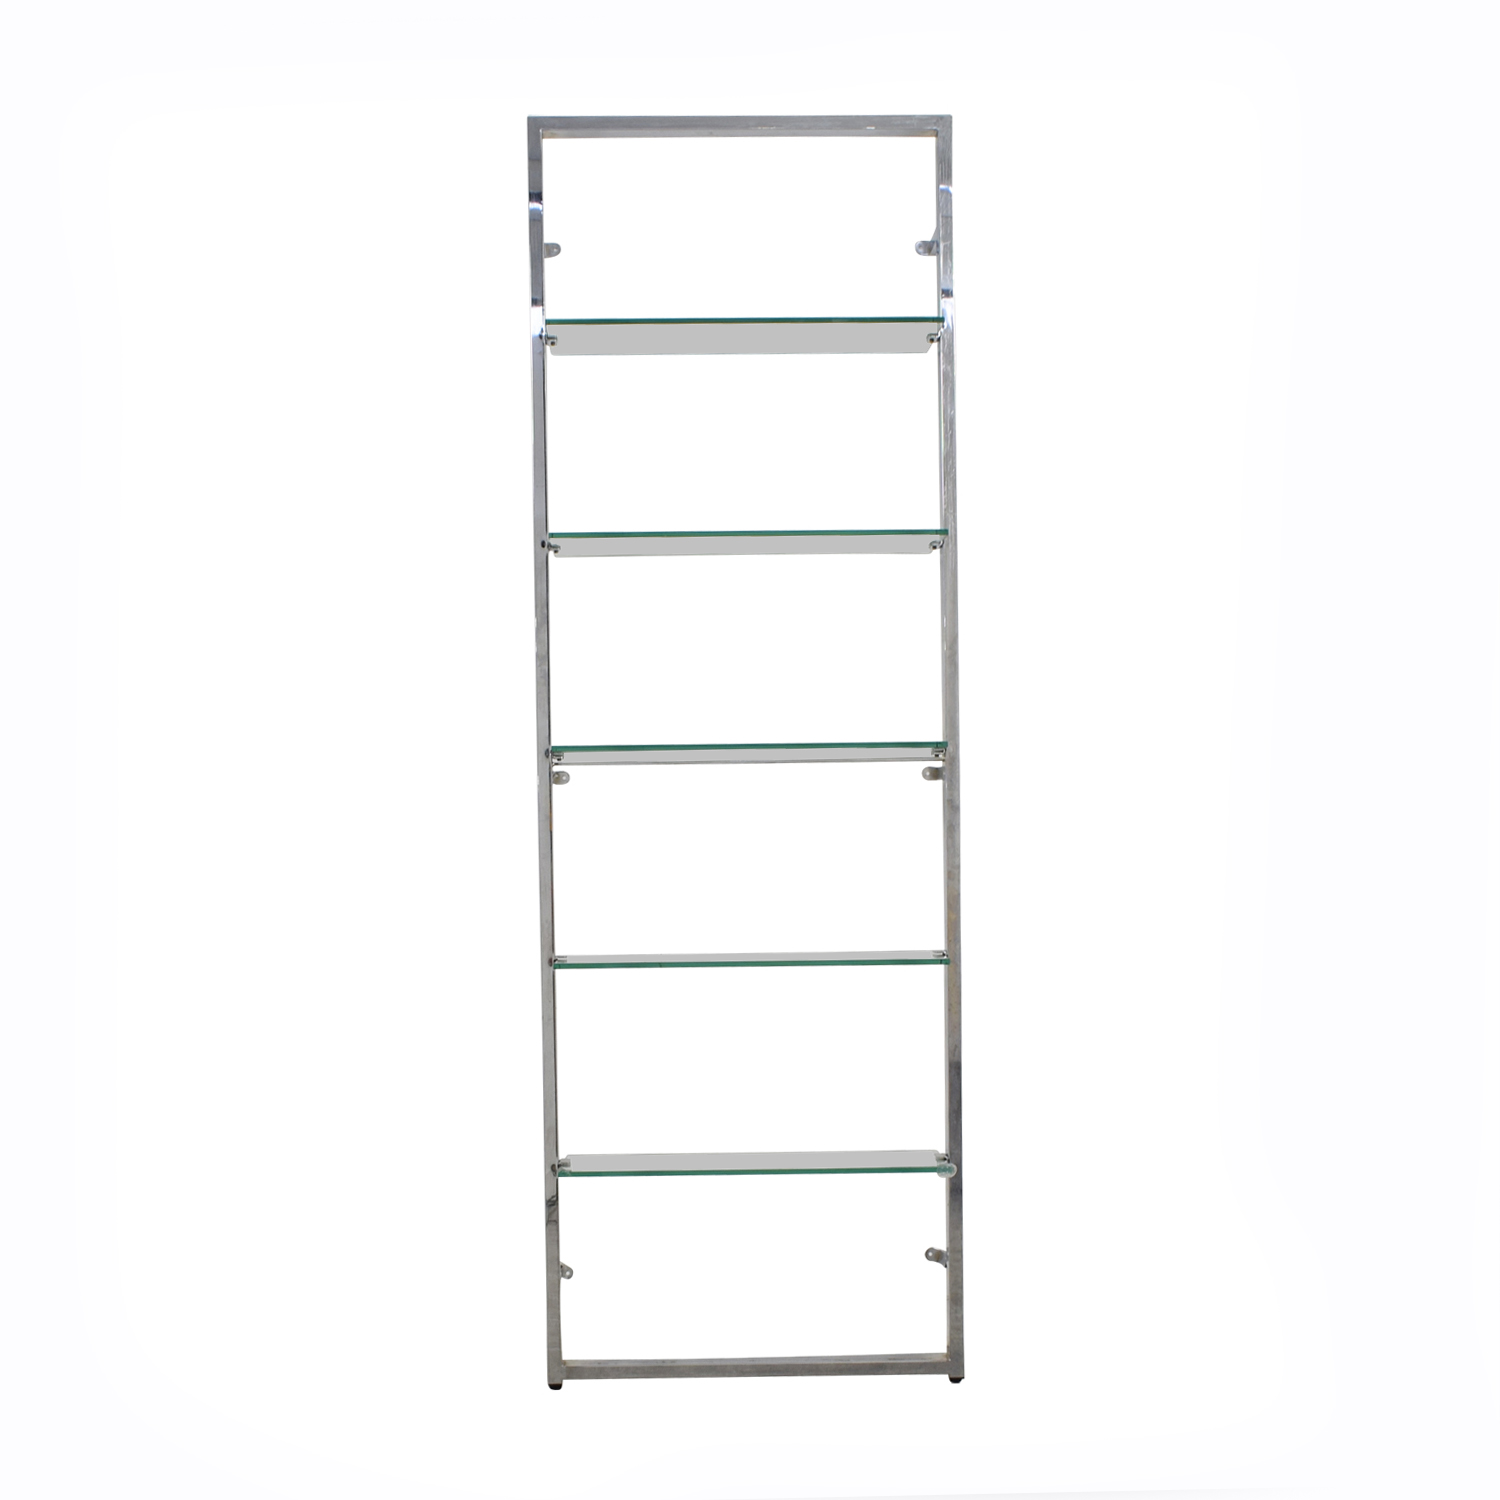 CB2 CB2 Tesso Chrome and Glass Wall Mounted Bookcase nyc